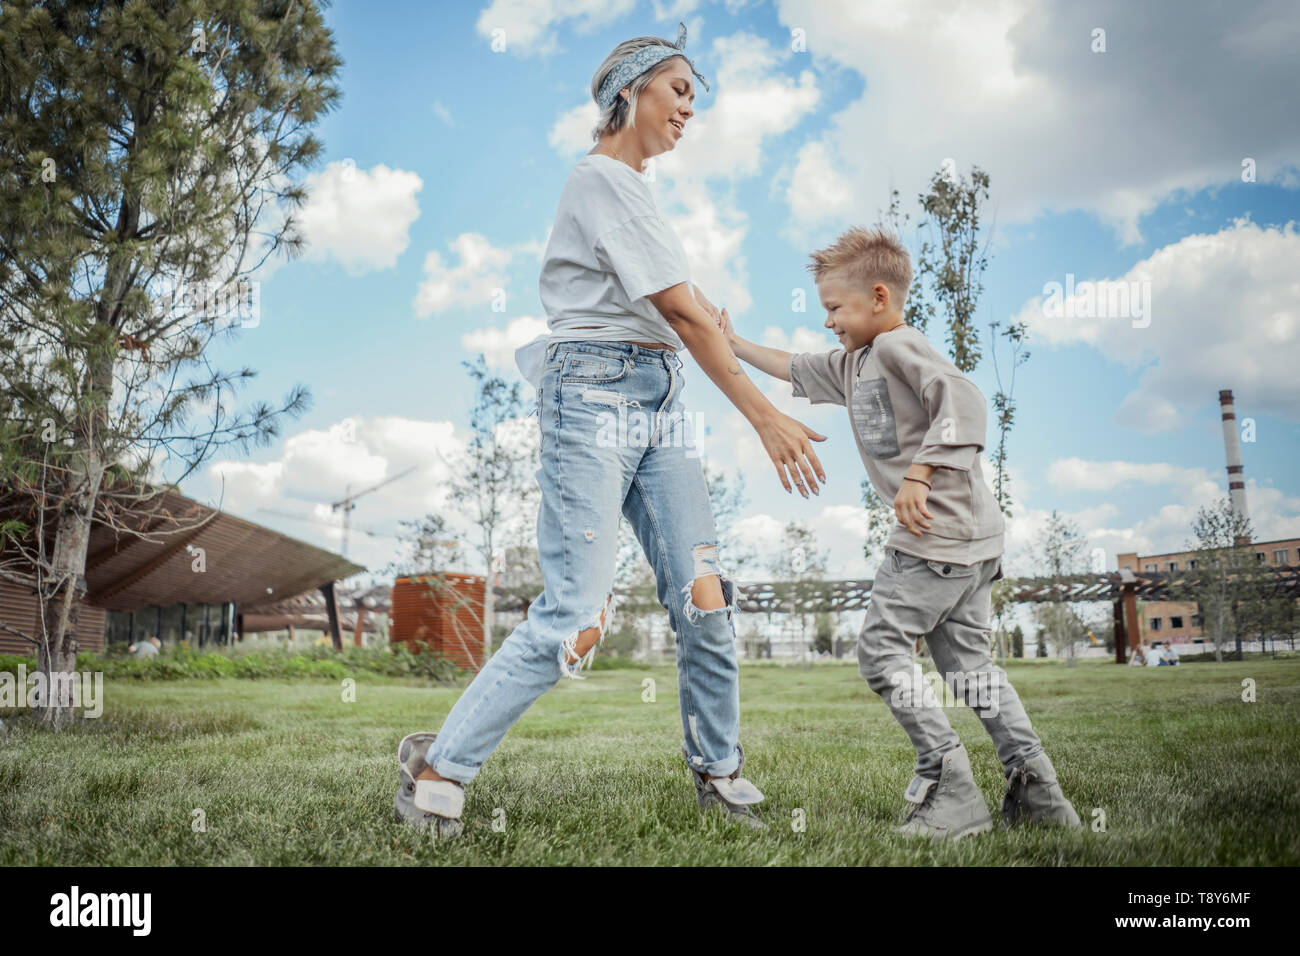 Young mum turning around, whirling with her son at park. Happy family concept. - Stock Image